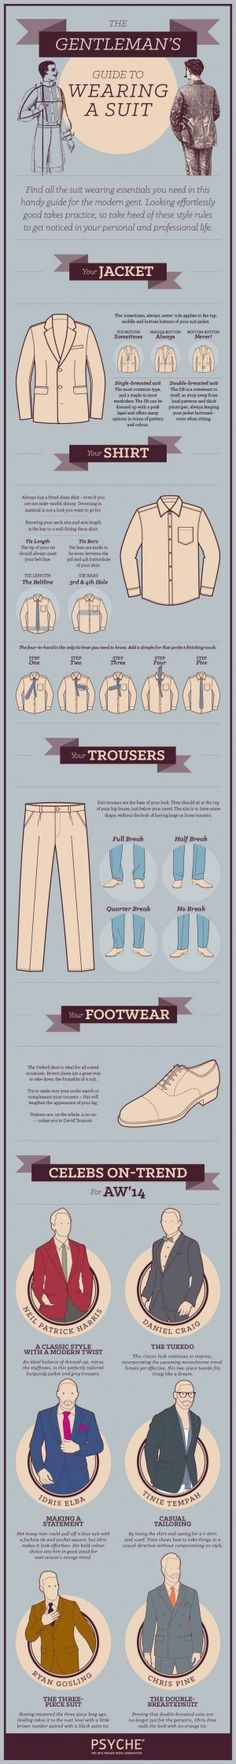 guide to wearing a suit